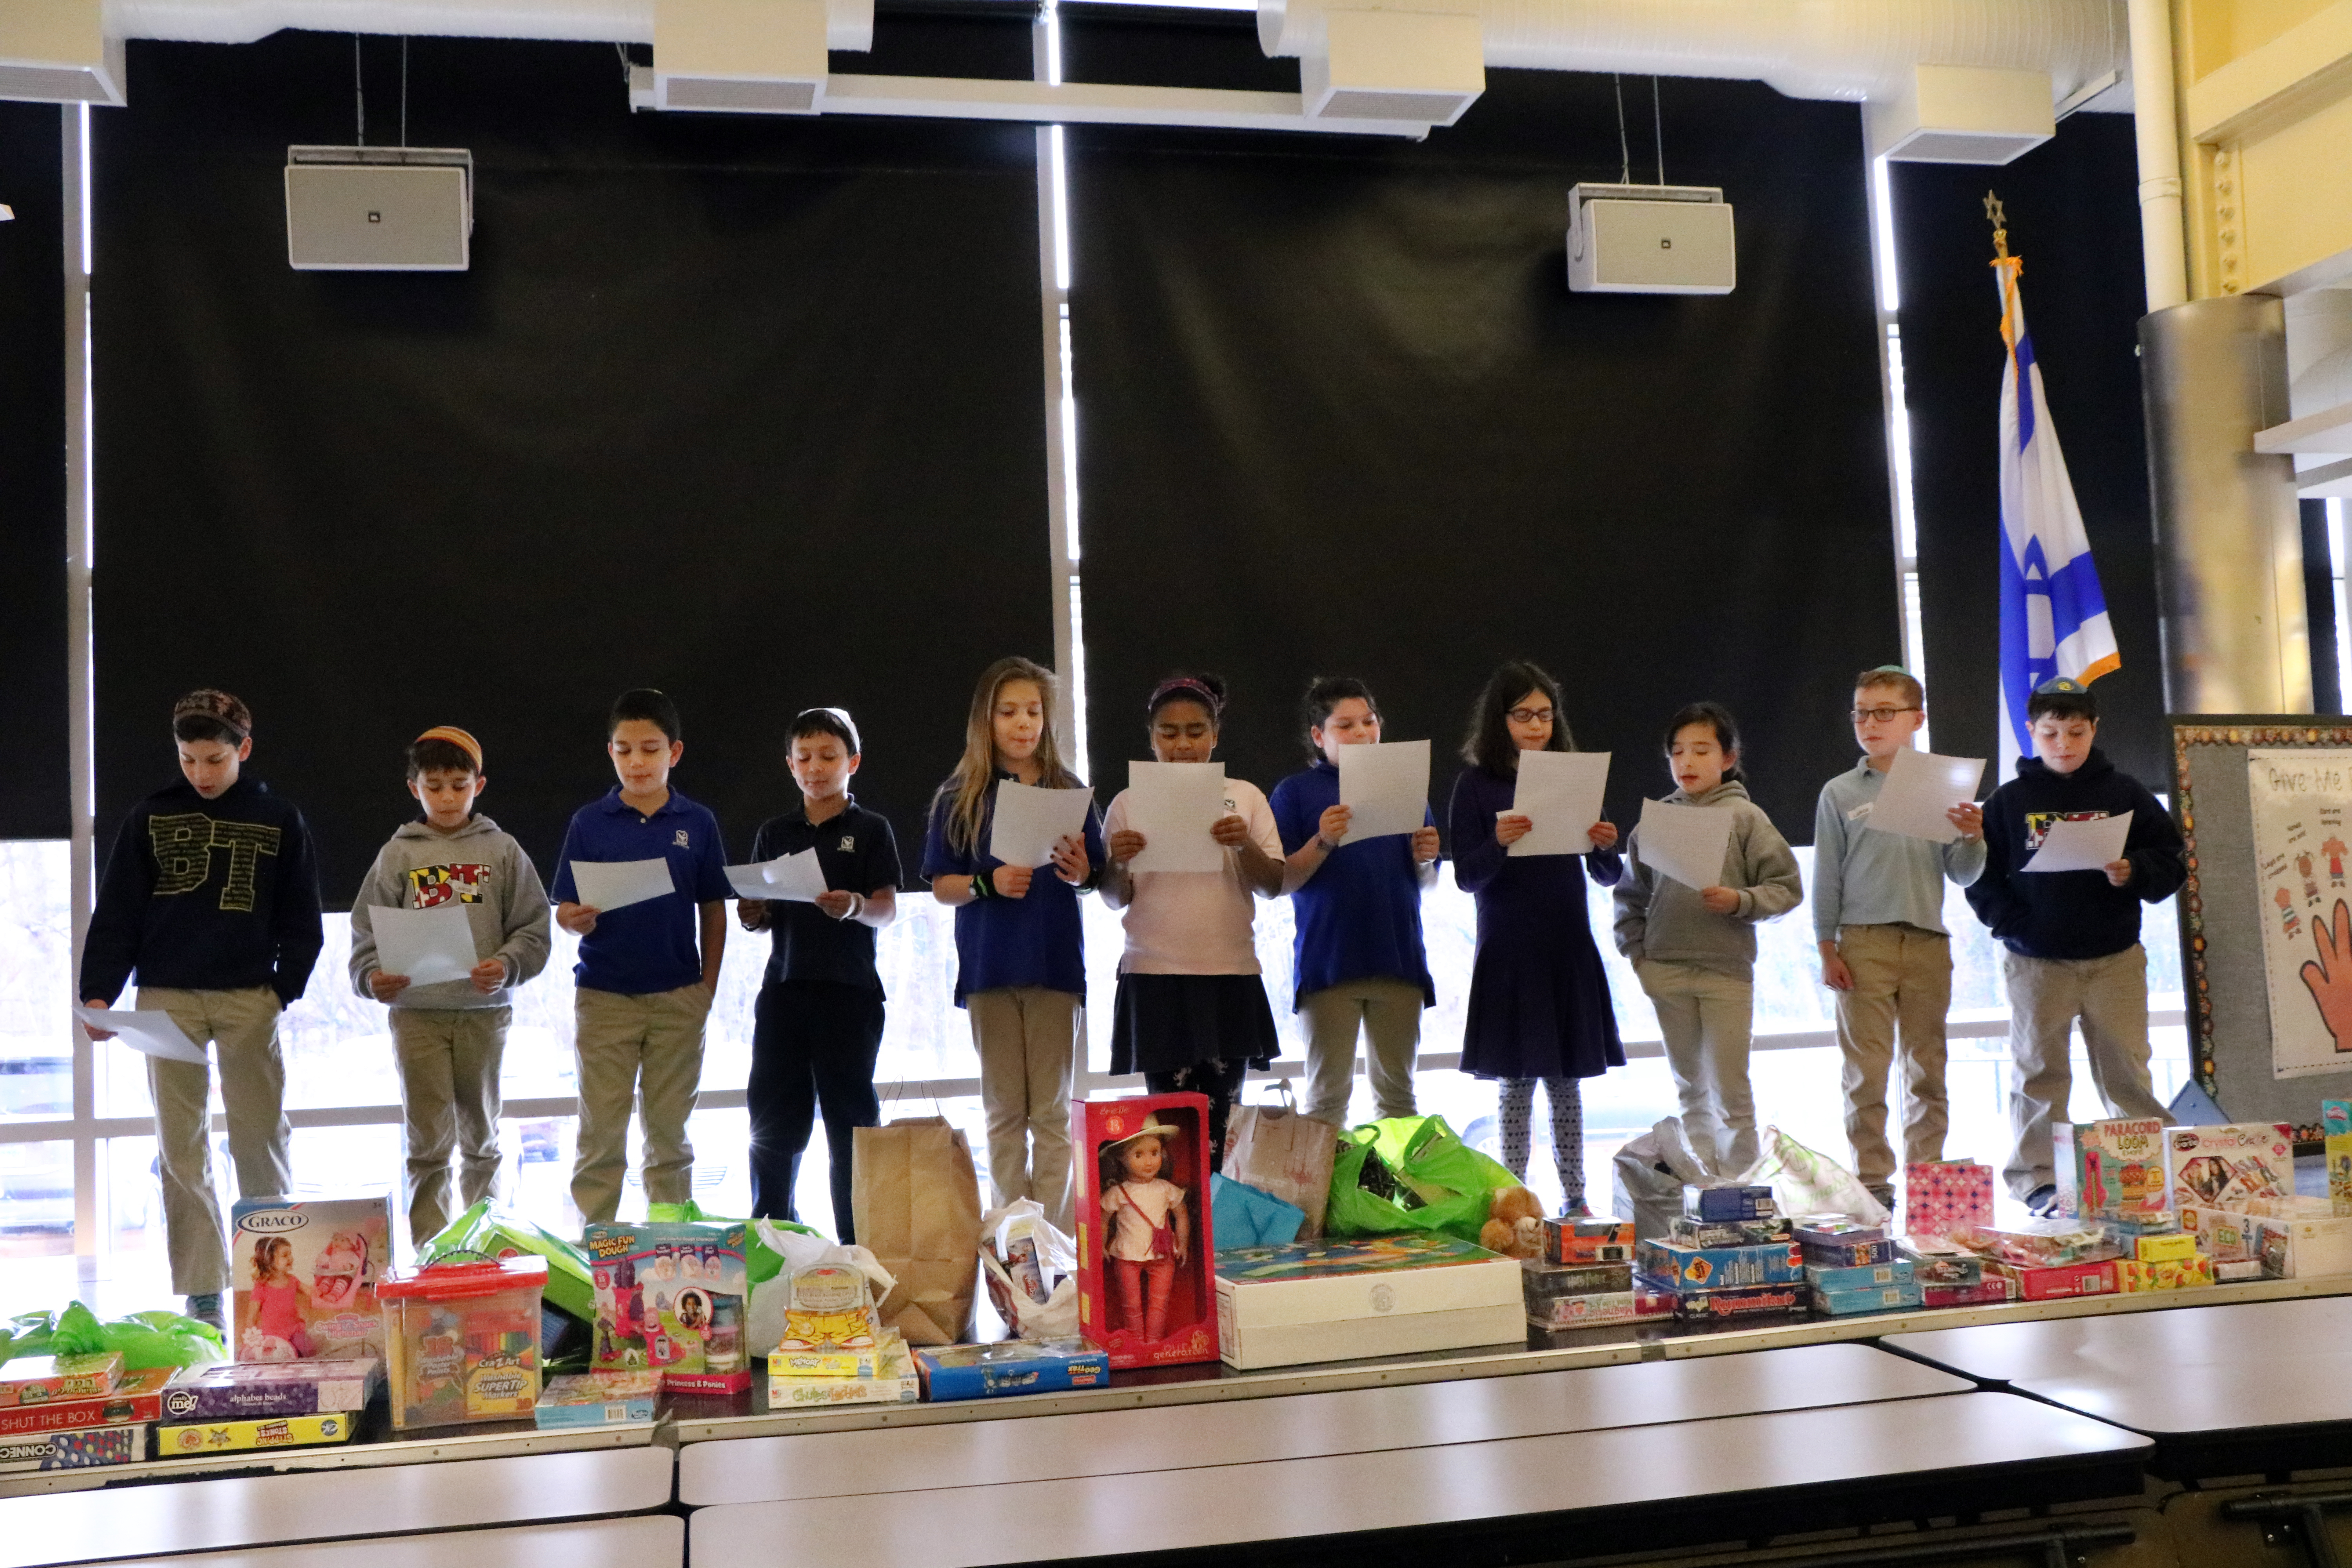 Fourth-graders at Beth Tfiloh Dahan Community School collected nearly 200 gifts for the Jewish Caring Network's Chanukah toy drive. The toys were distributed to children who face serious illnesses or who have ill family members. (Provided)